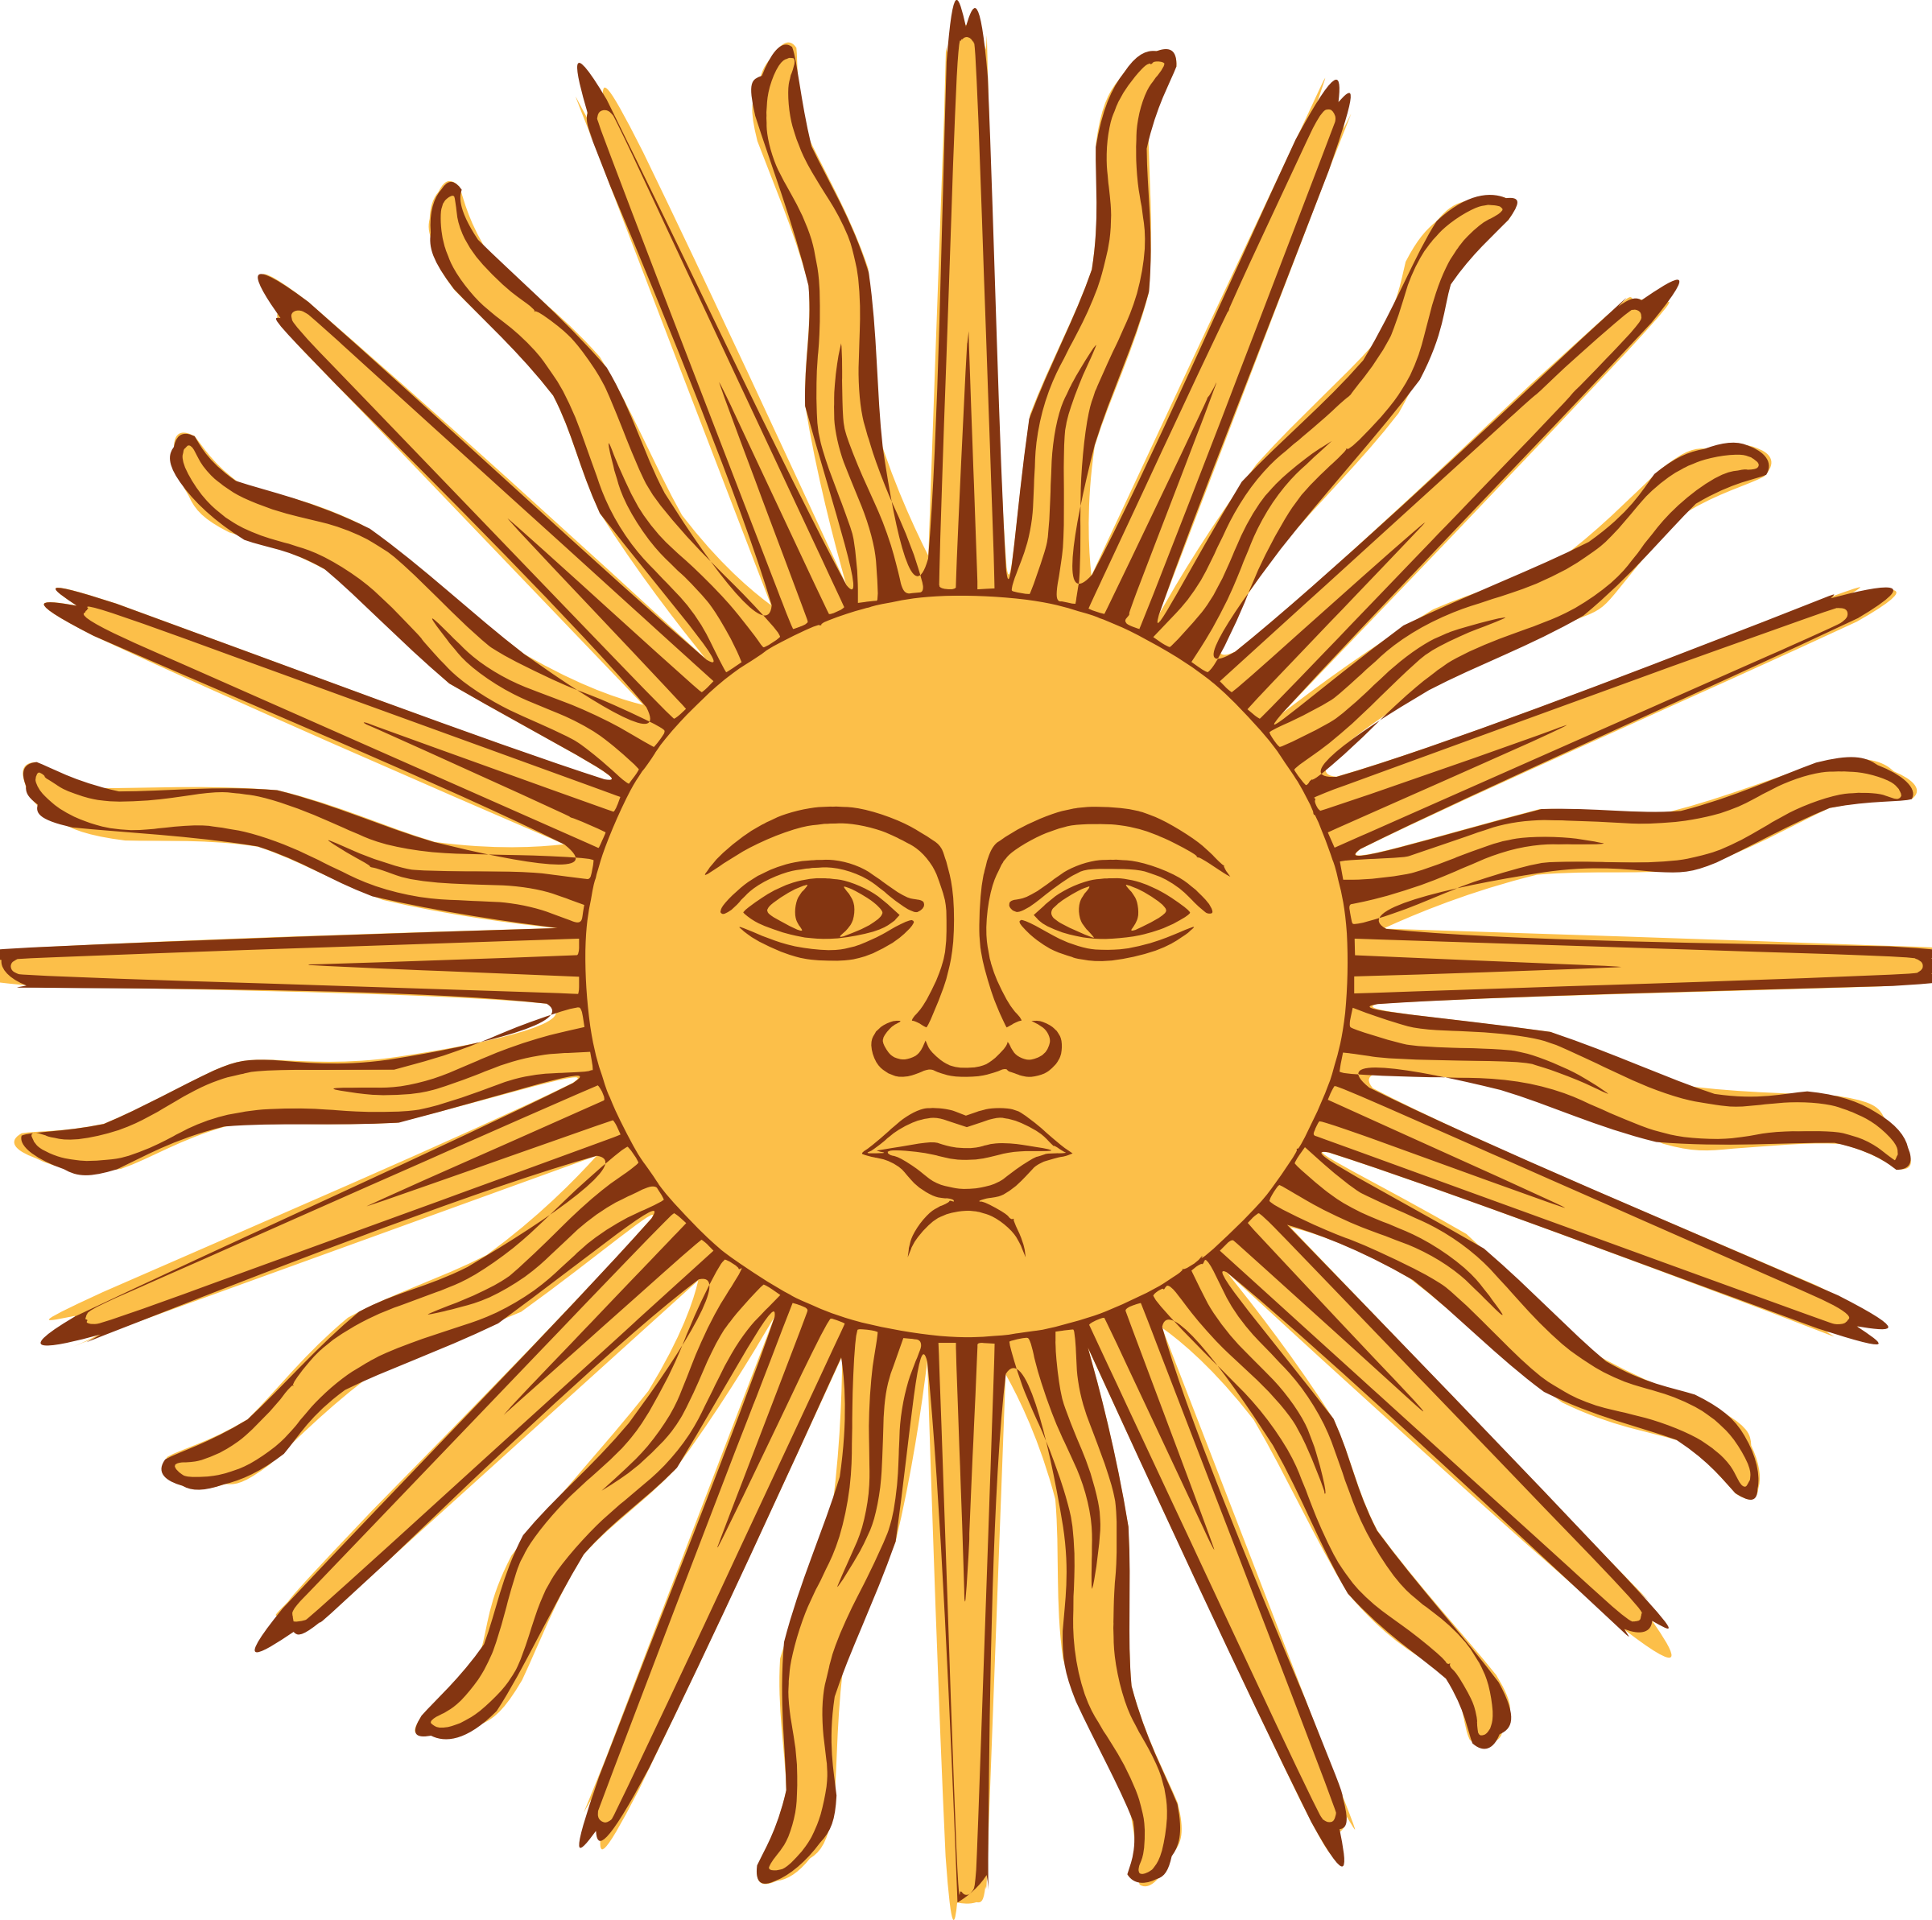 Animation of Sol de MayoBandera de Argentina Sun art